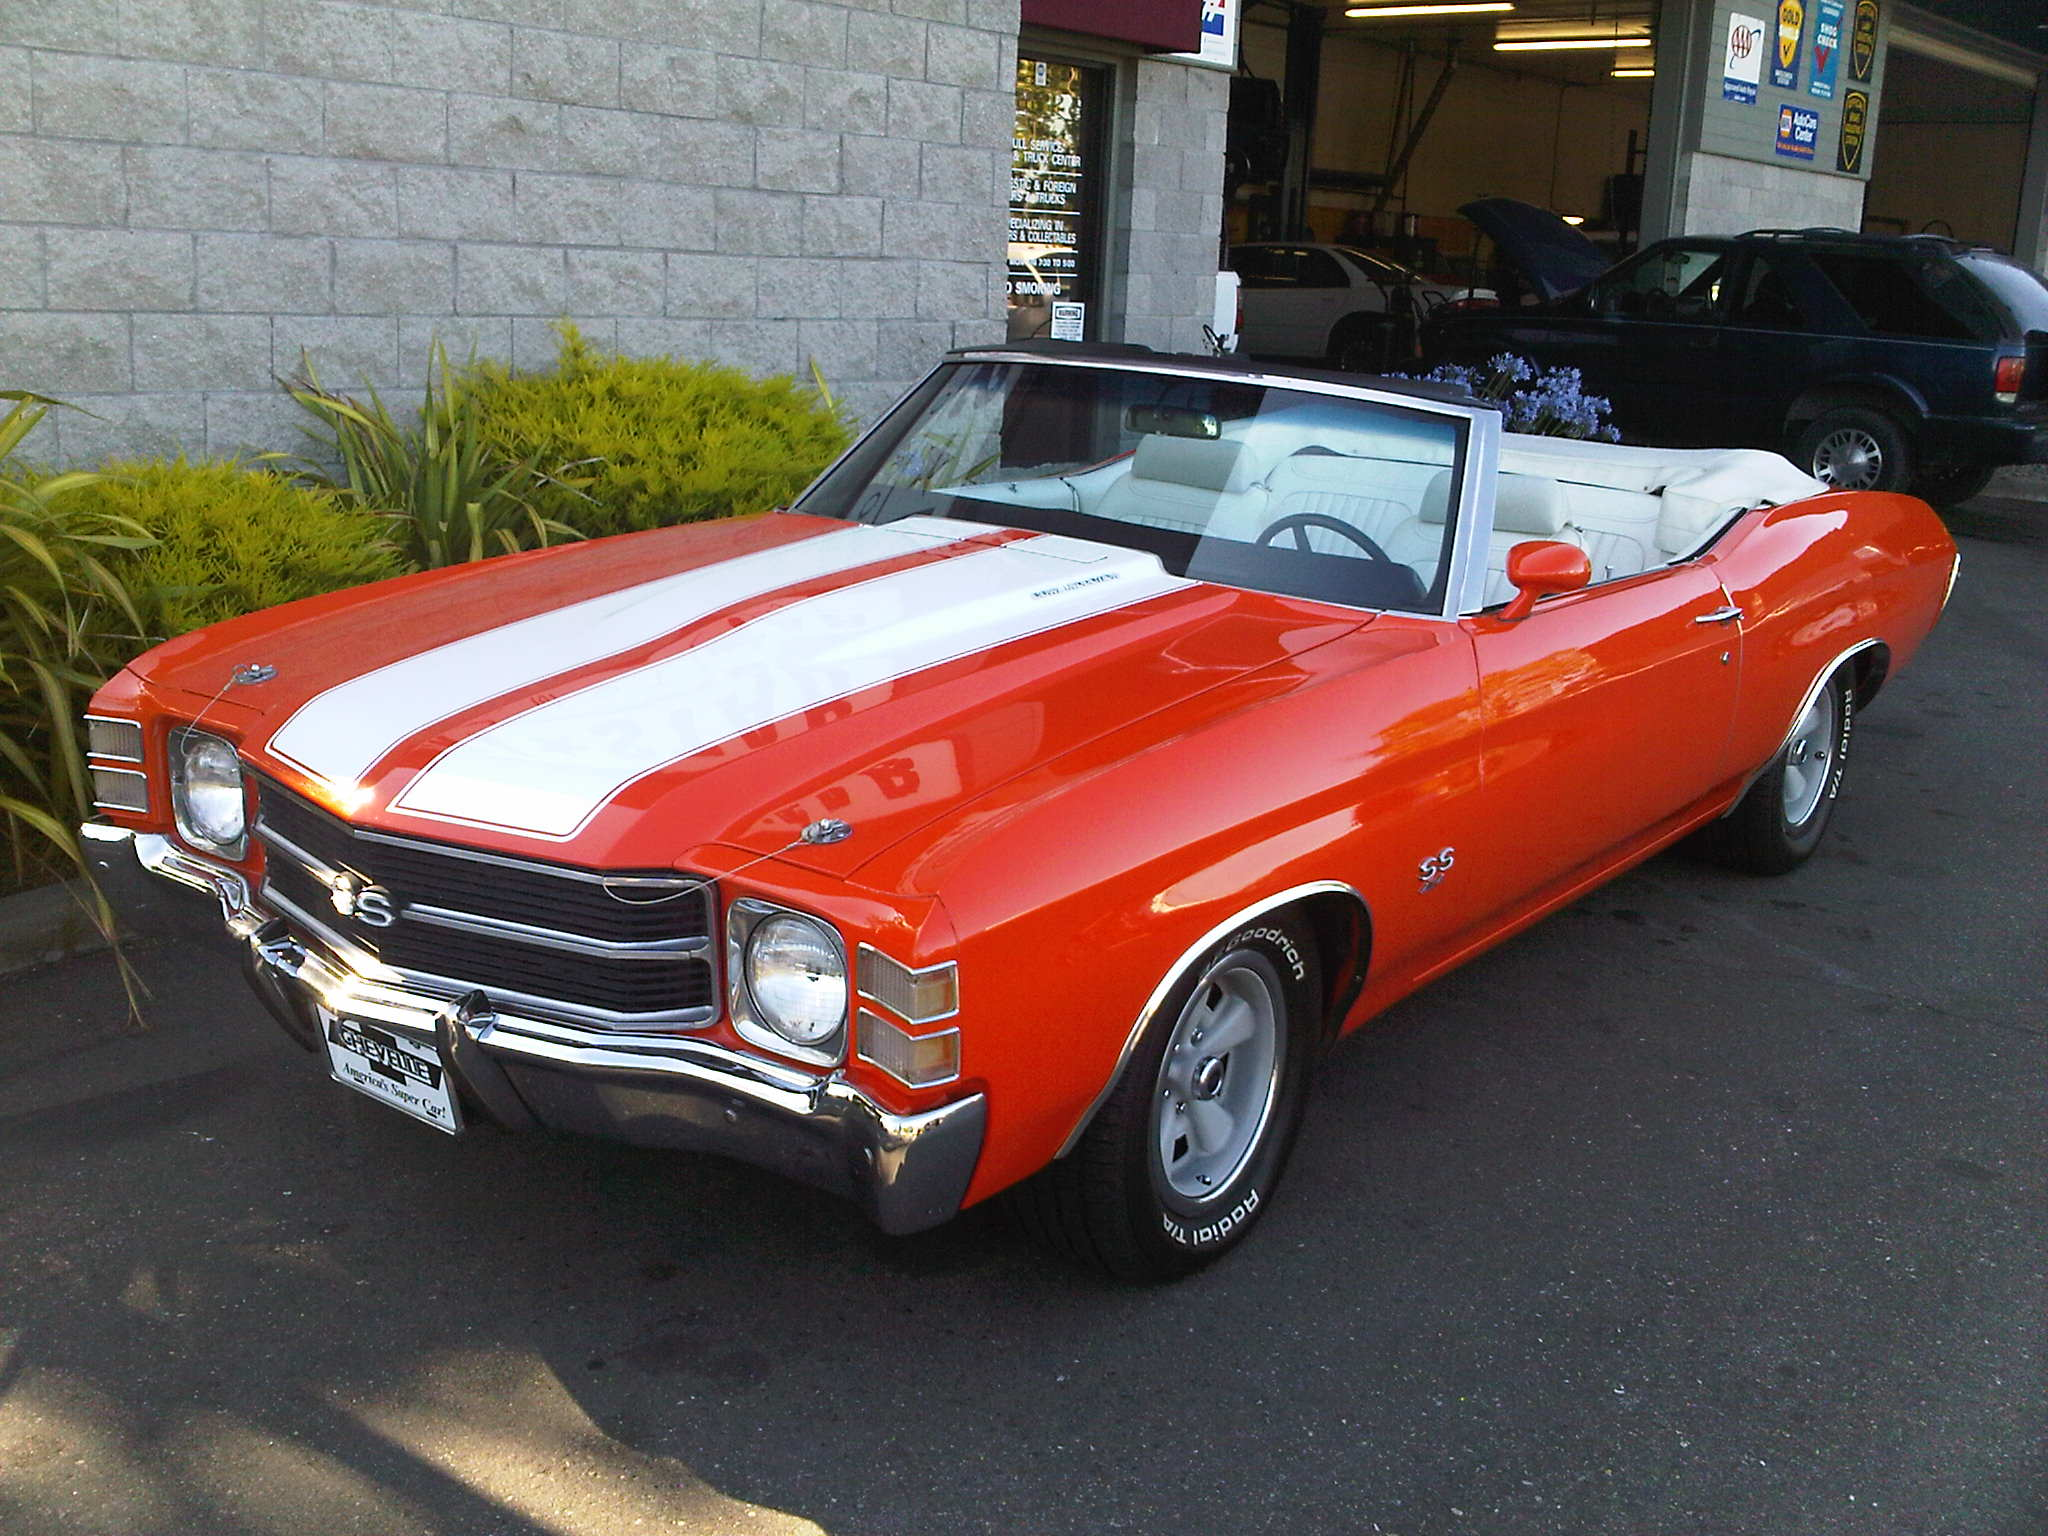 Tristar Automotive repairs and restores muscle cars.